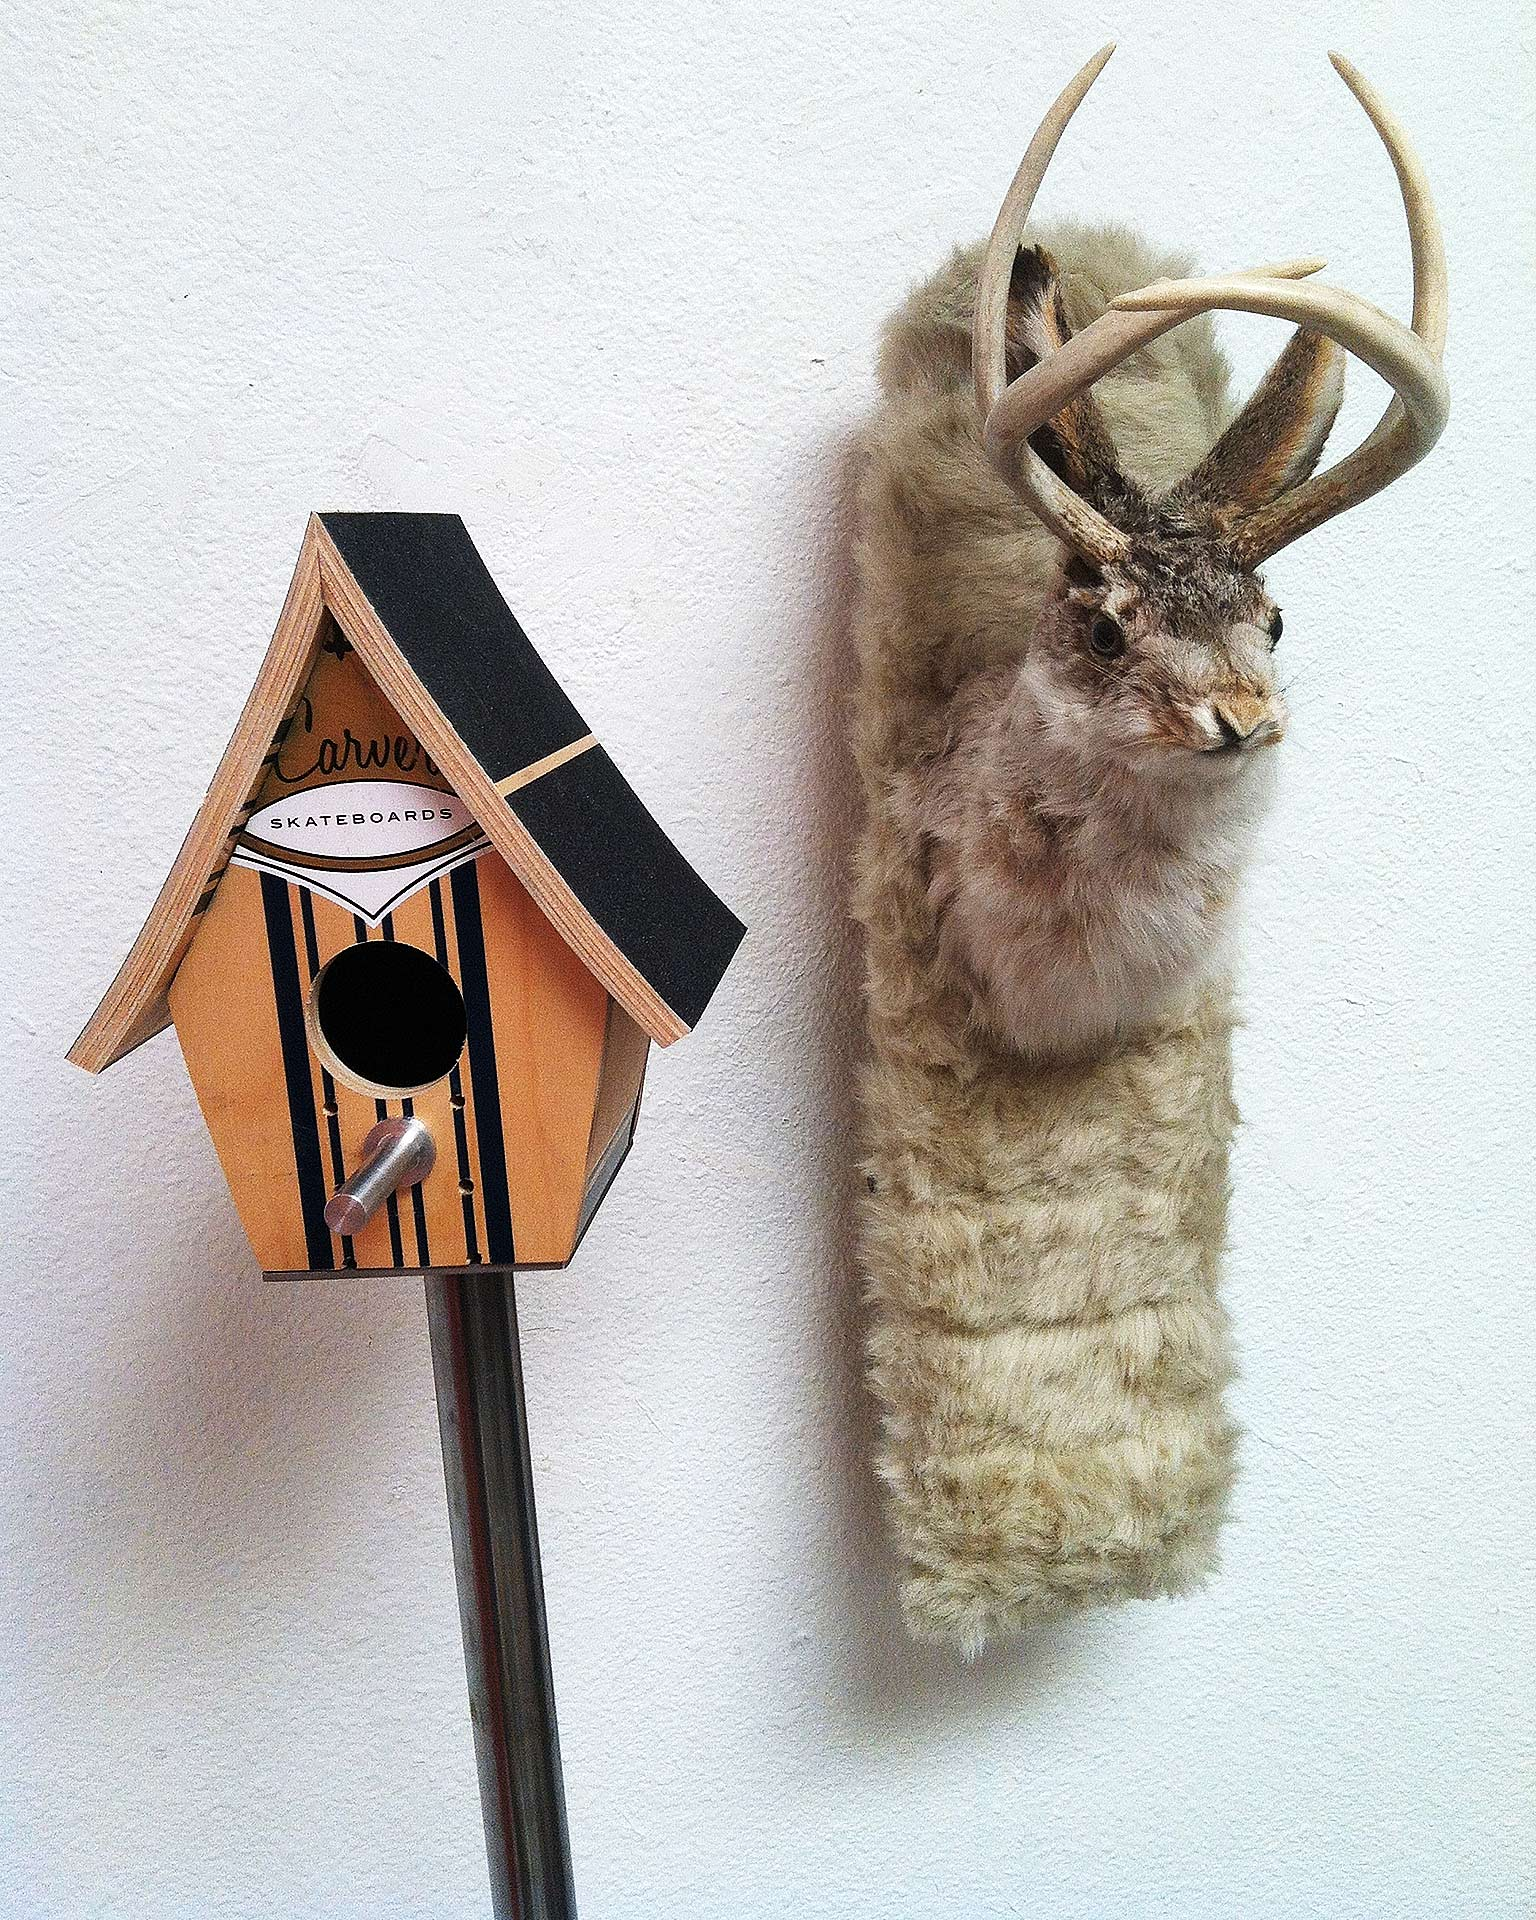 Birdhouses and Jackalopes